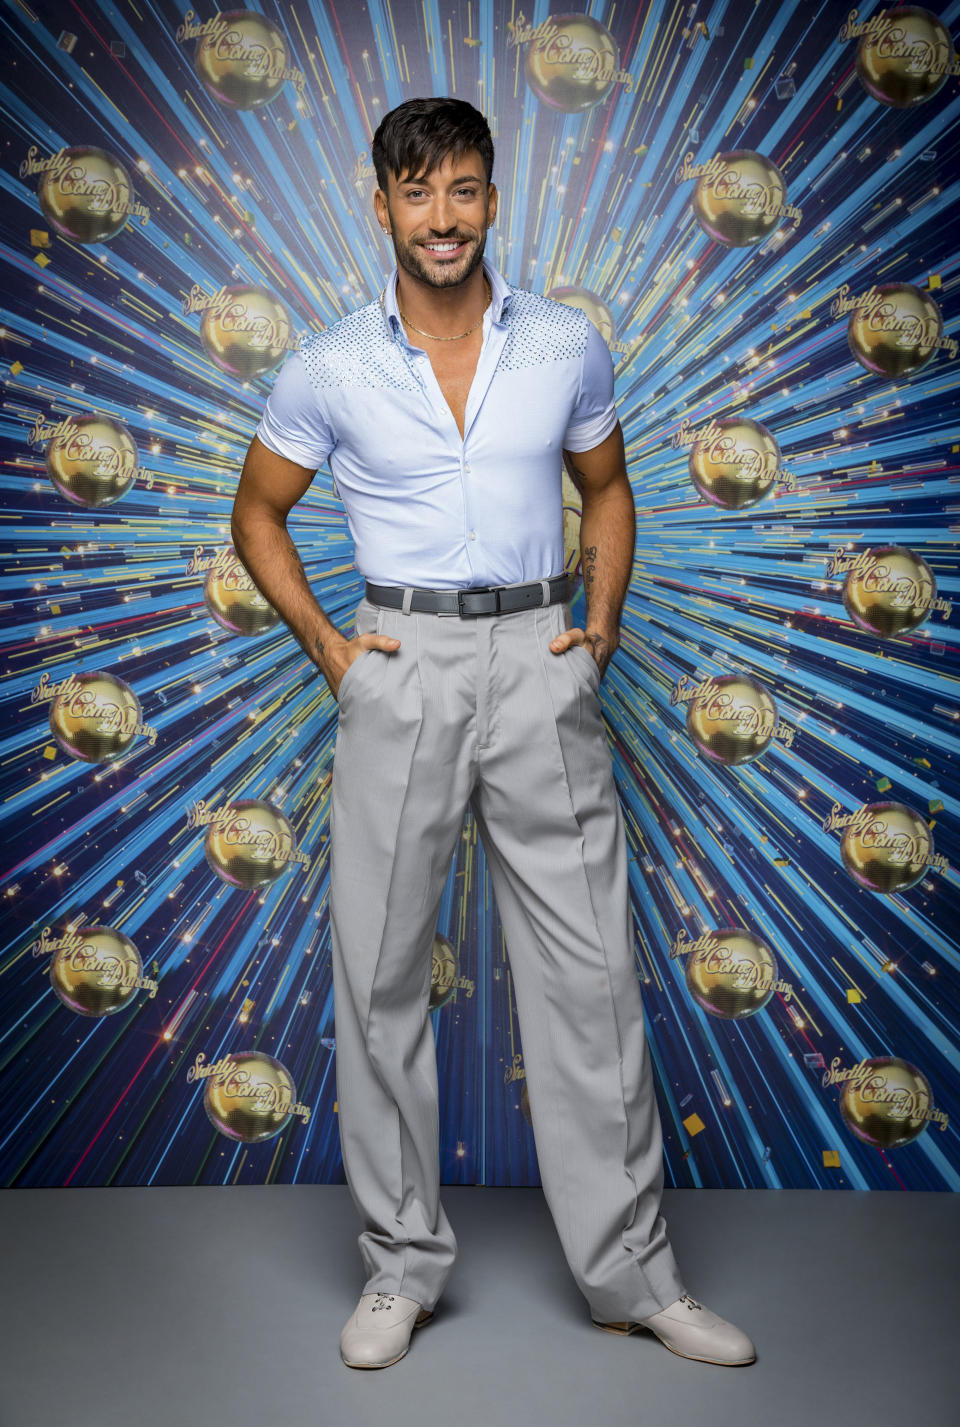 The Strictly Come Dancing professional dancers Giovanni Pernice - (C) BBC - Photographer: Guy Levy